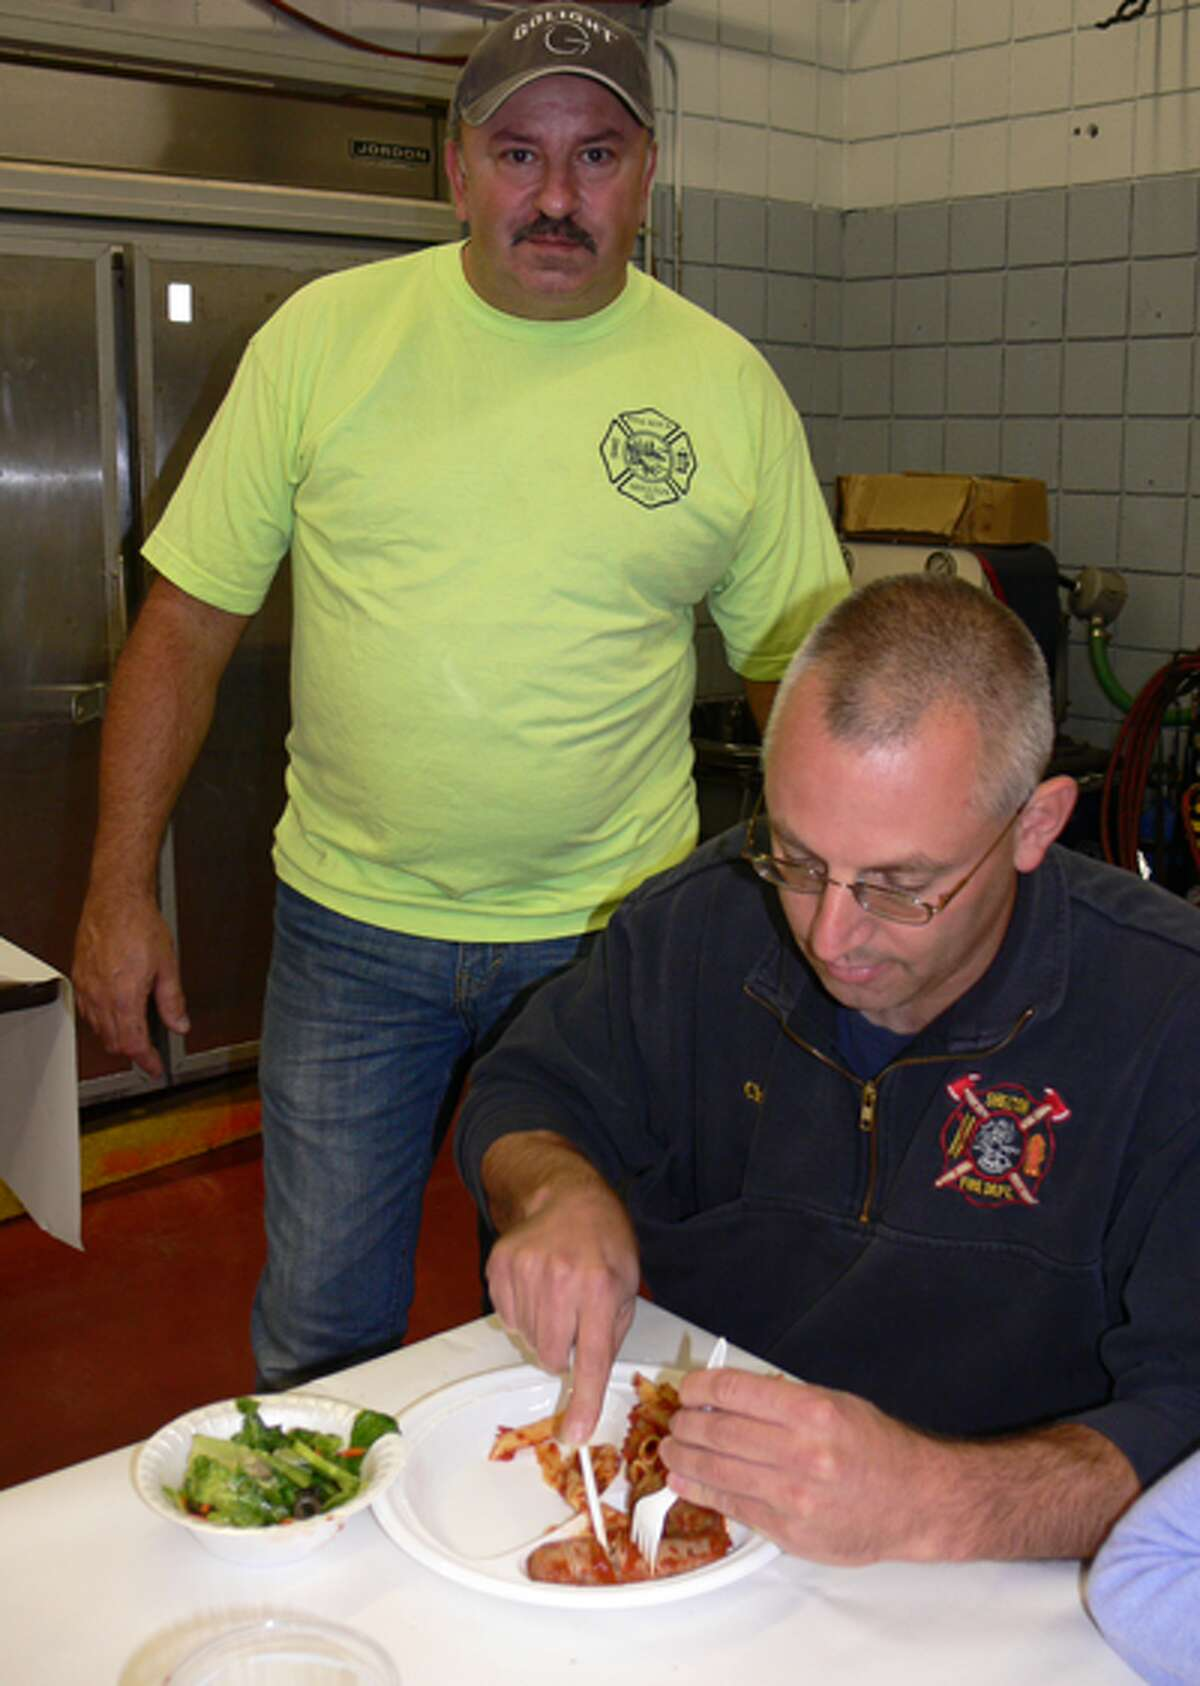 Shelton Fire Chief Fran Jones eats his dinner while Pine Rock Park firefighter Al Pereira looks on.